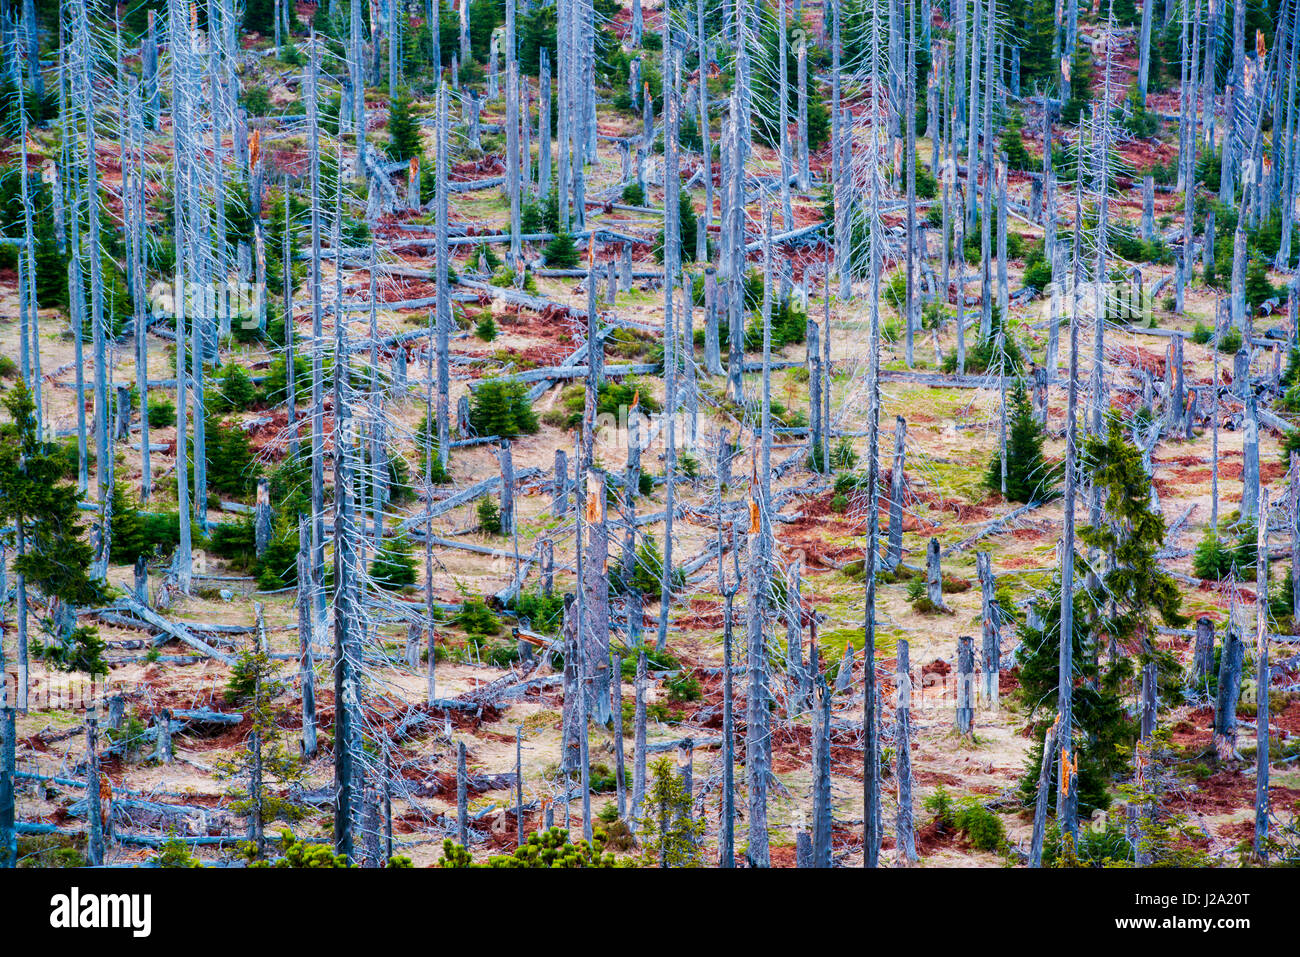 the Lusen mountain in the bayerischer wald national park in germany with forests affected by acid rain and european - Stock Image